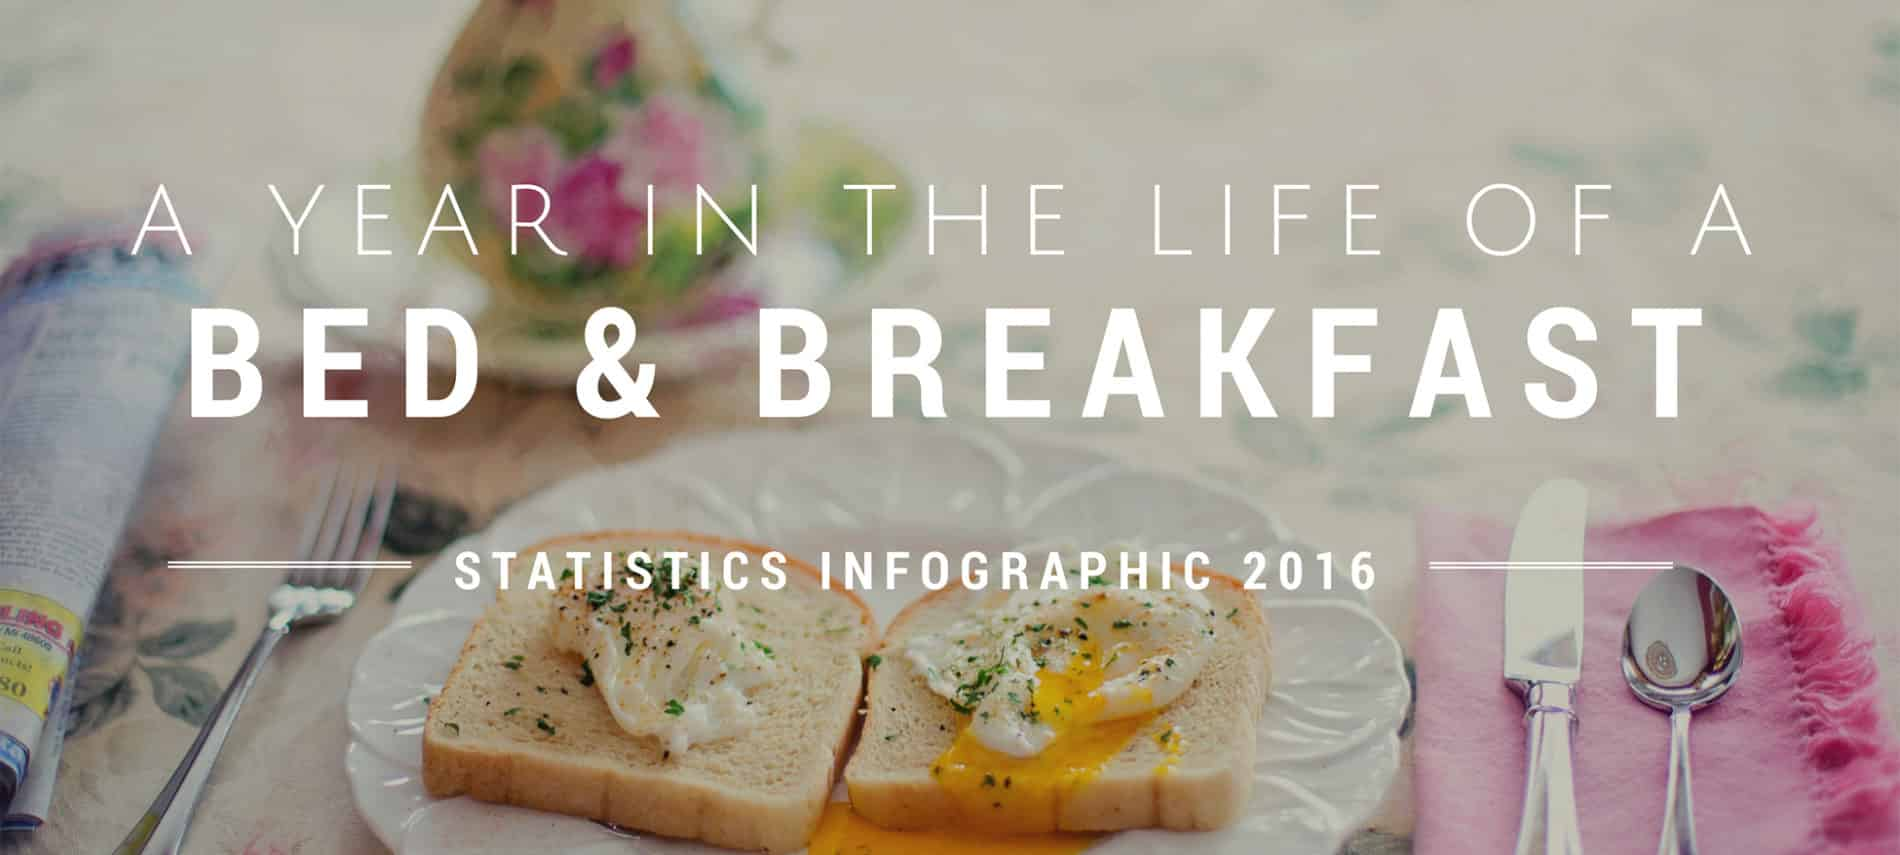 bed and breakfast statistics 2016